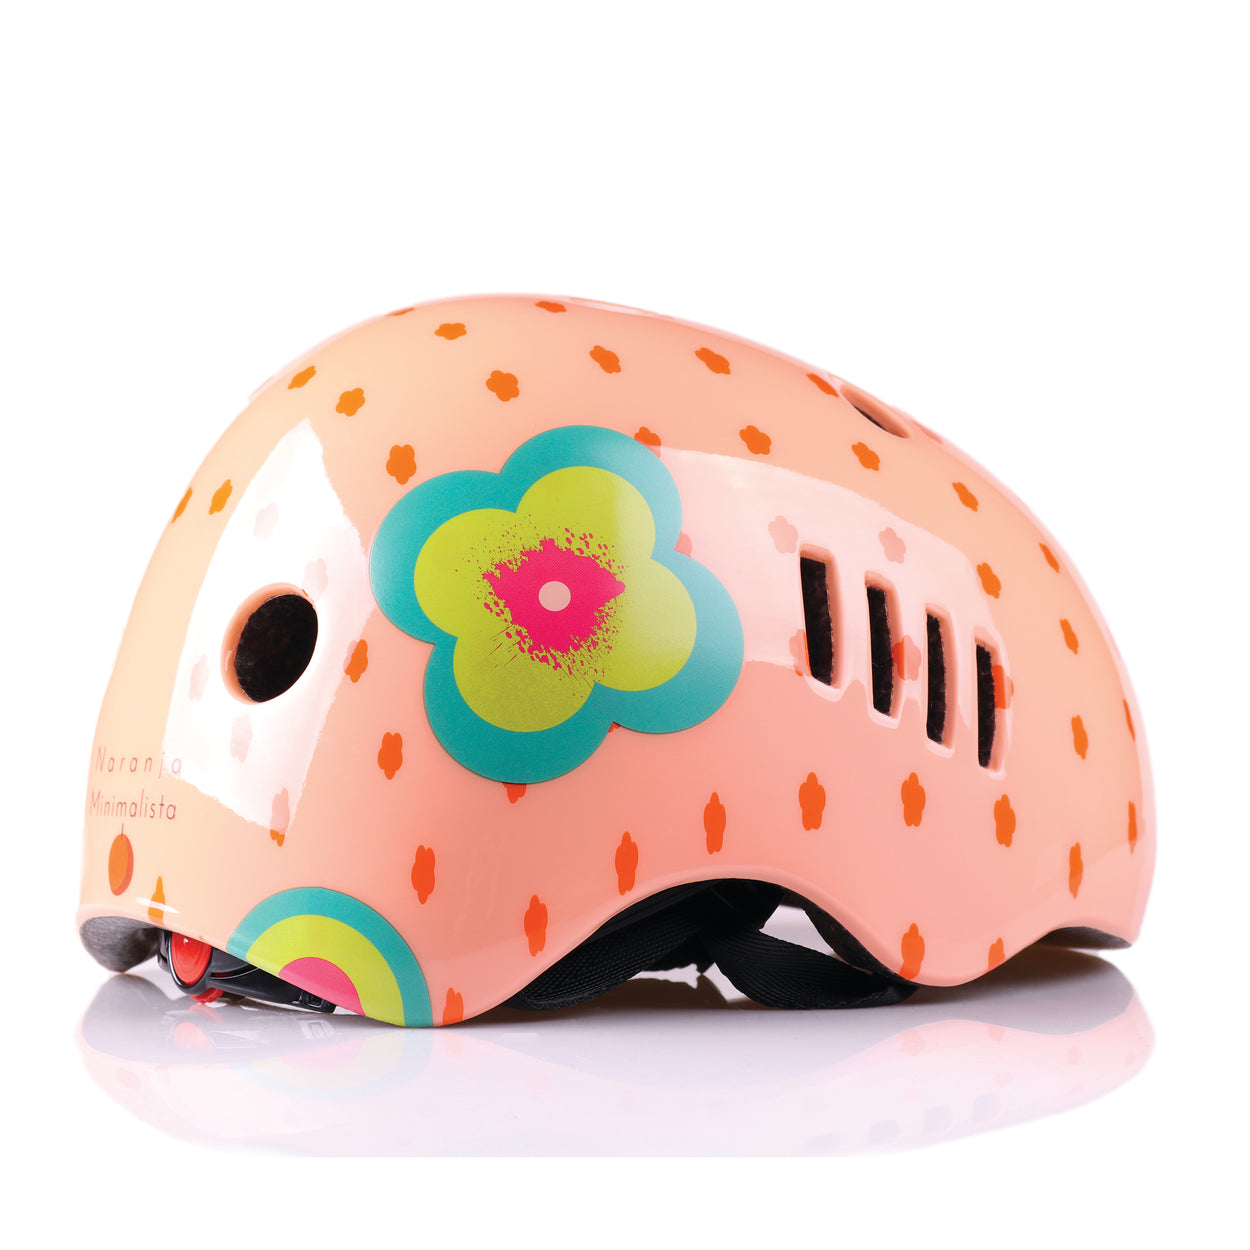 Kids bike helmet with polka dot design